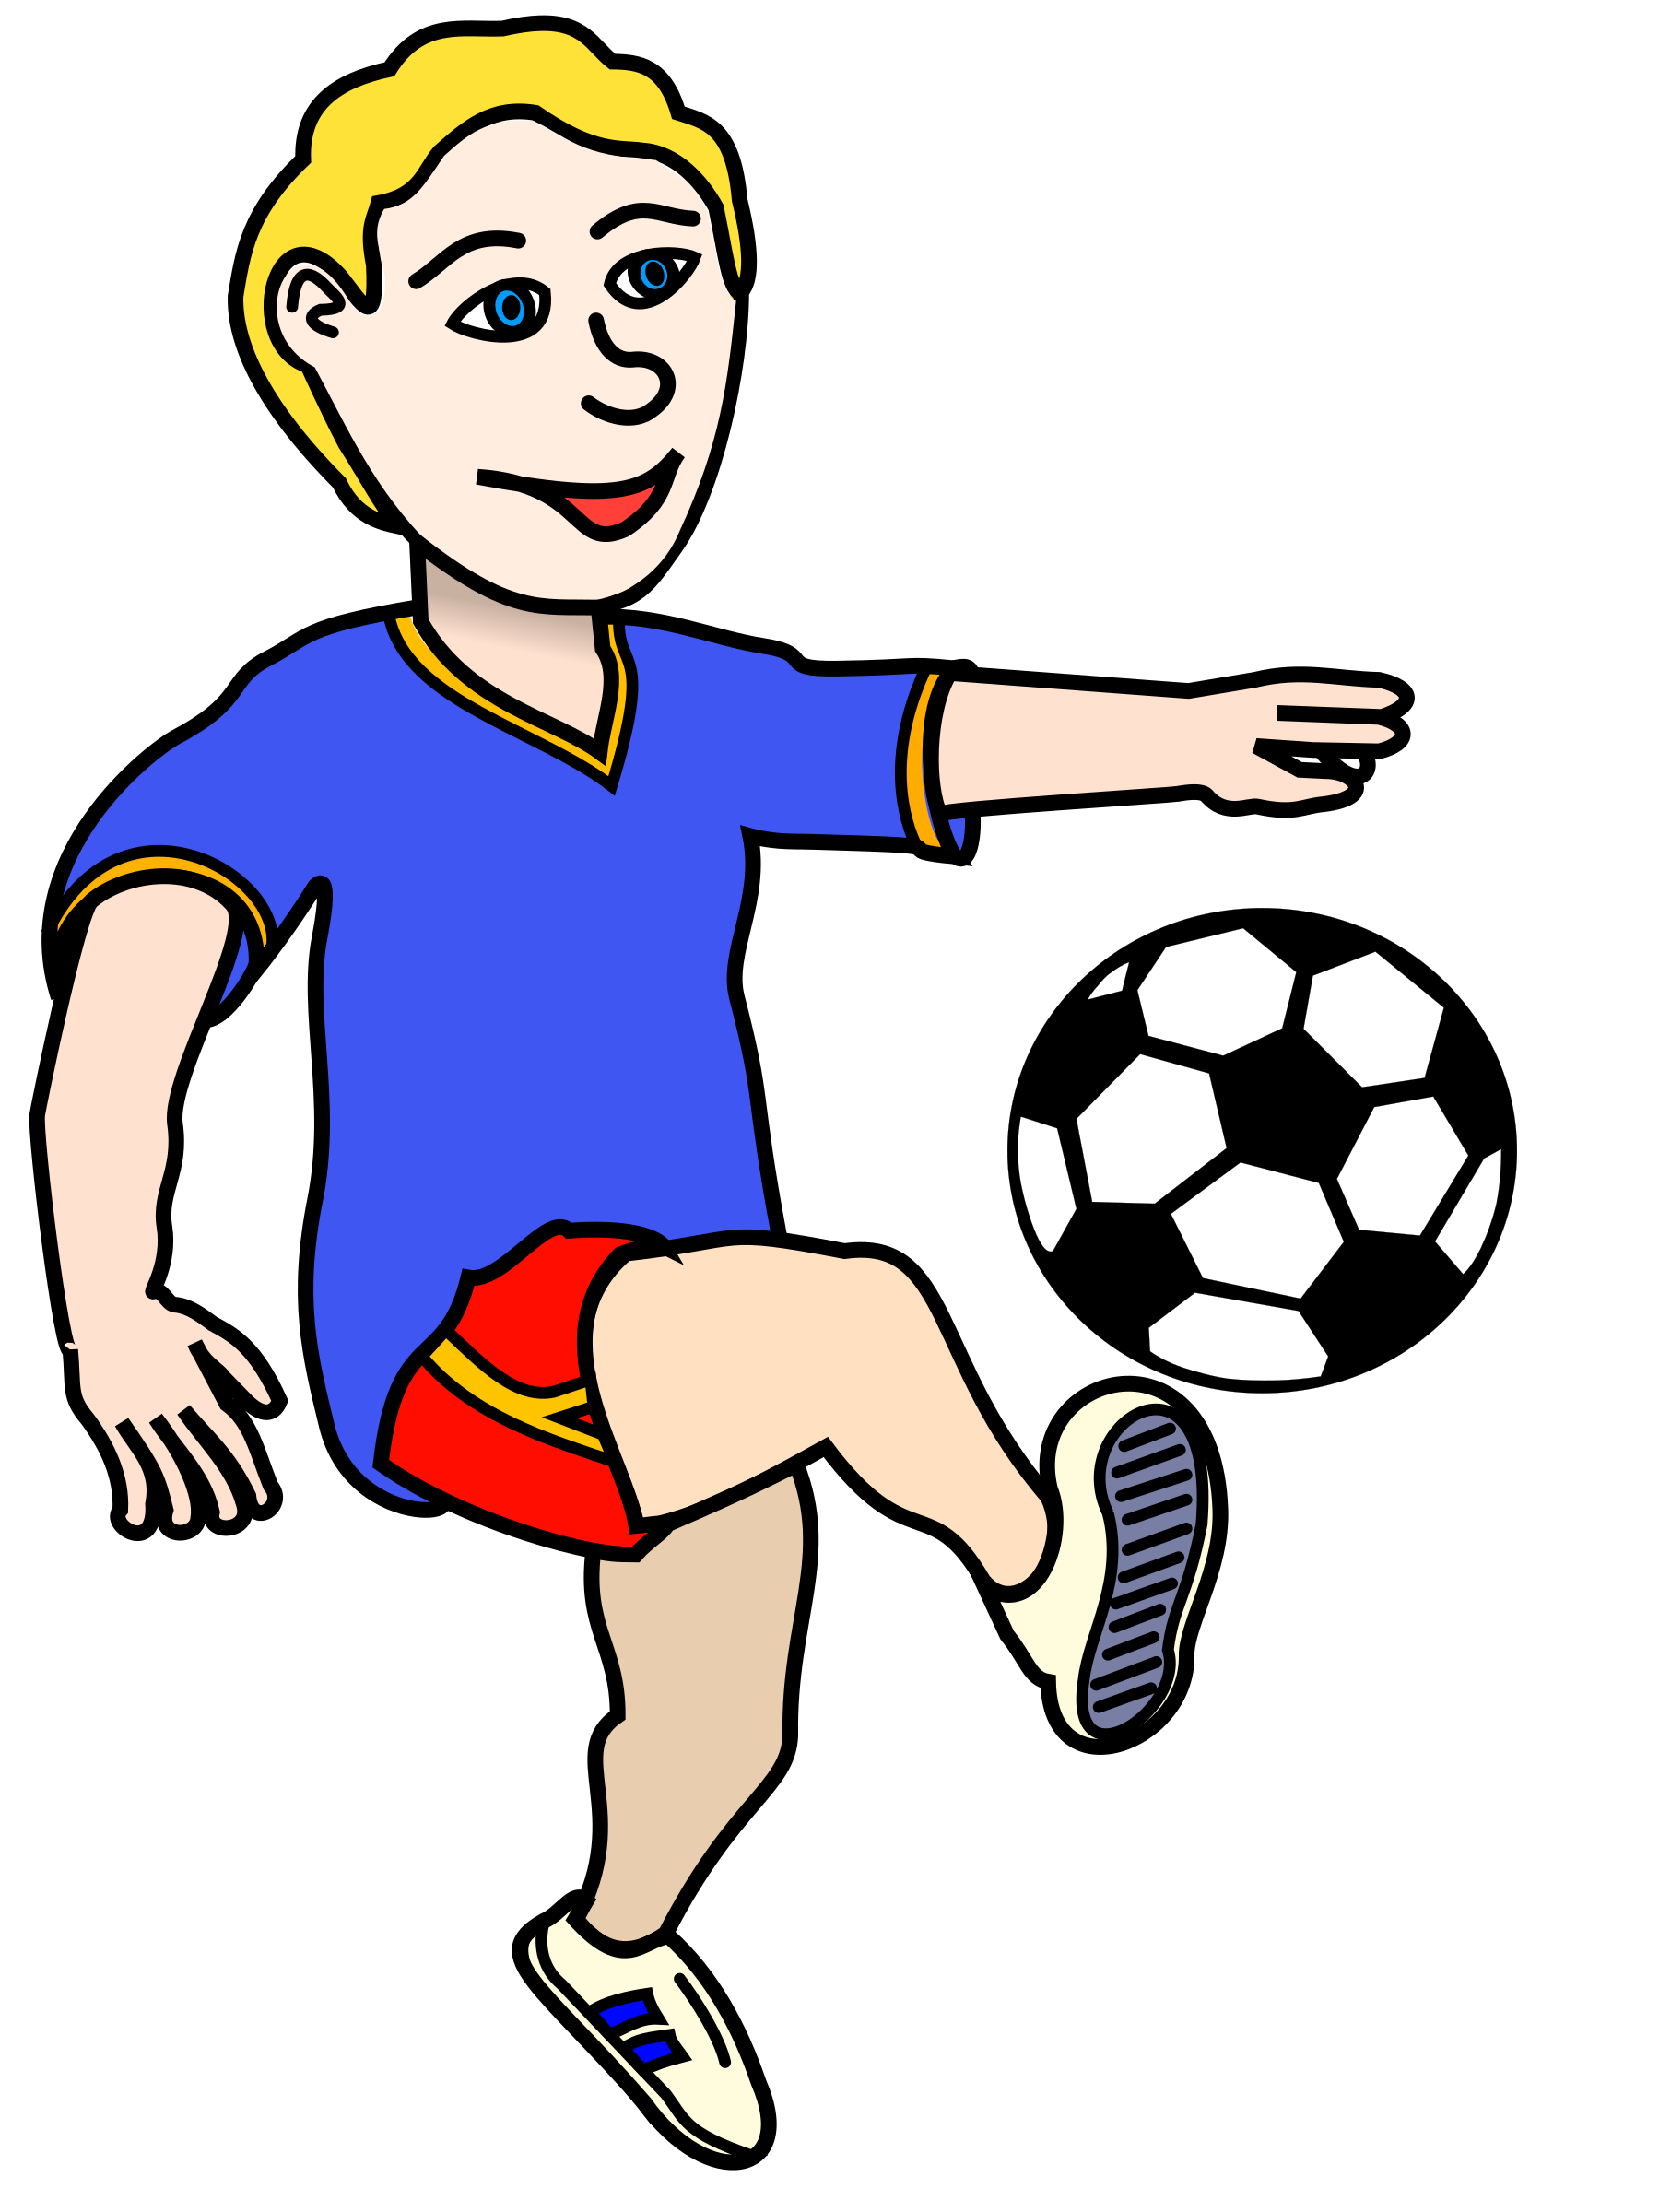 jpg free Soccer playing boy coloured. Action clipart football player